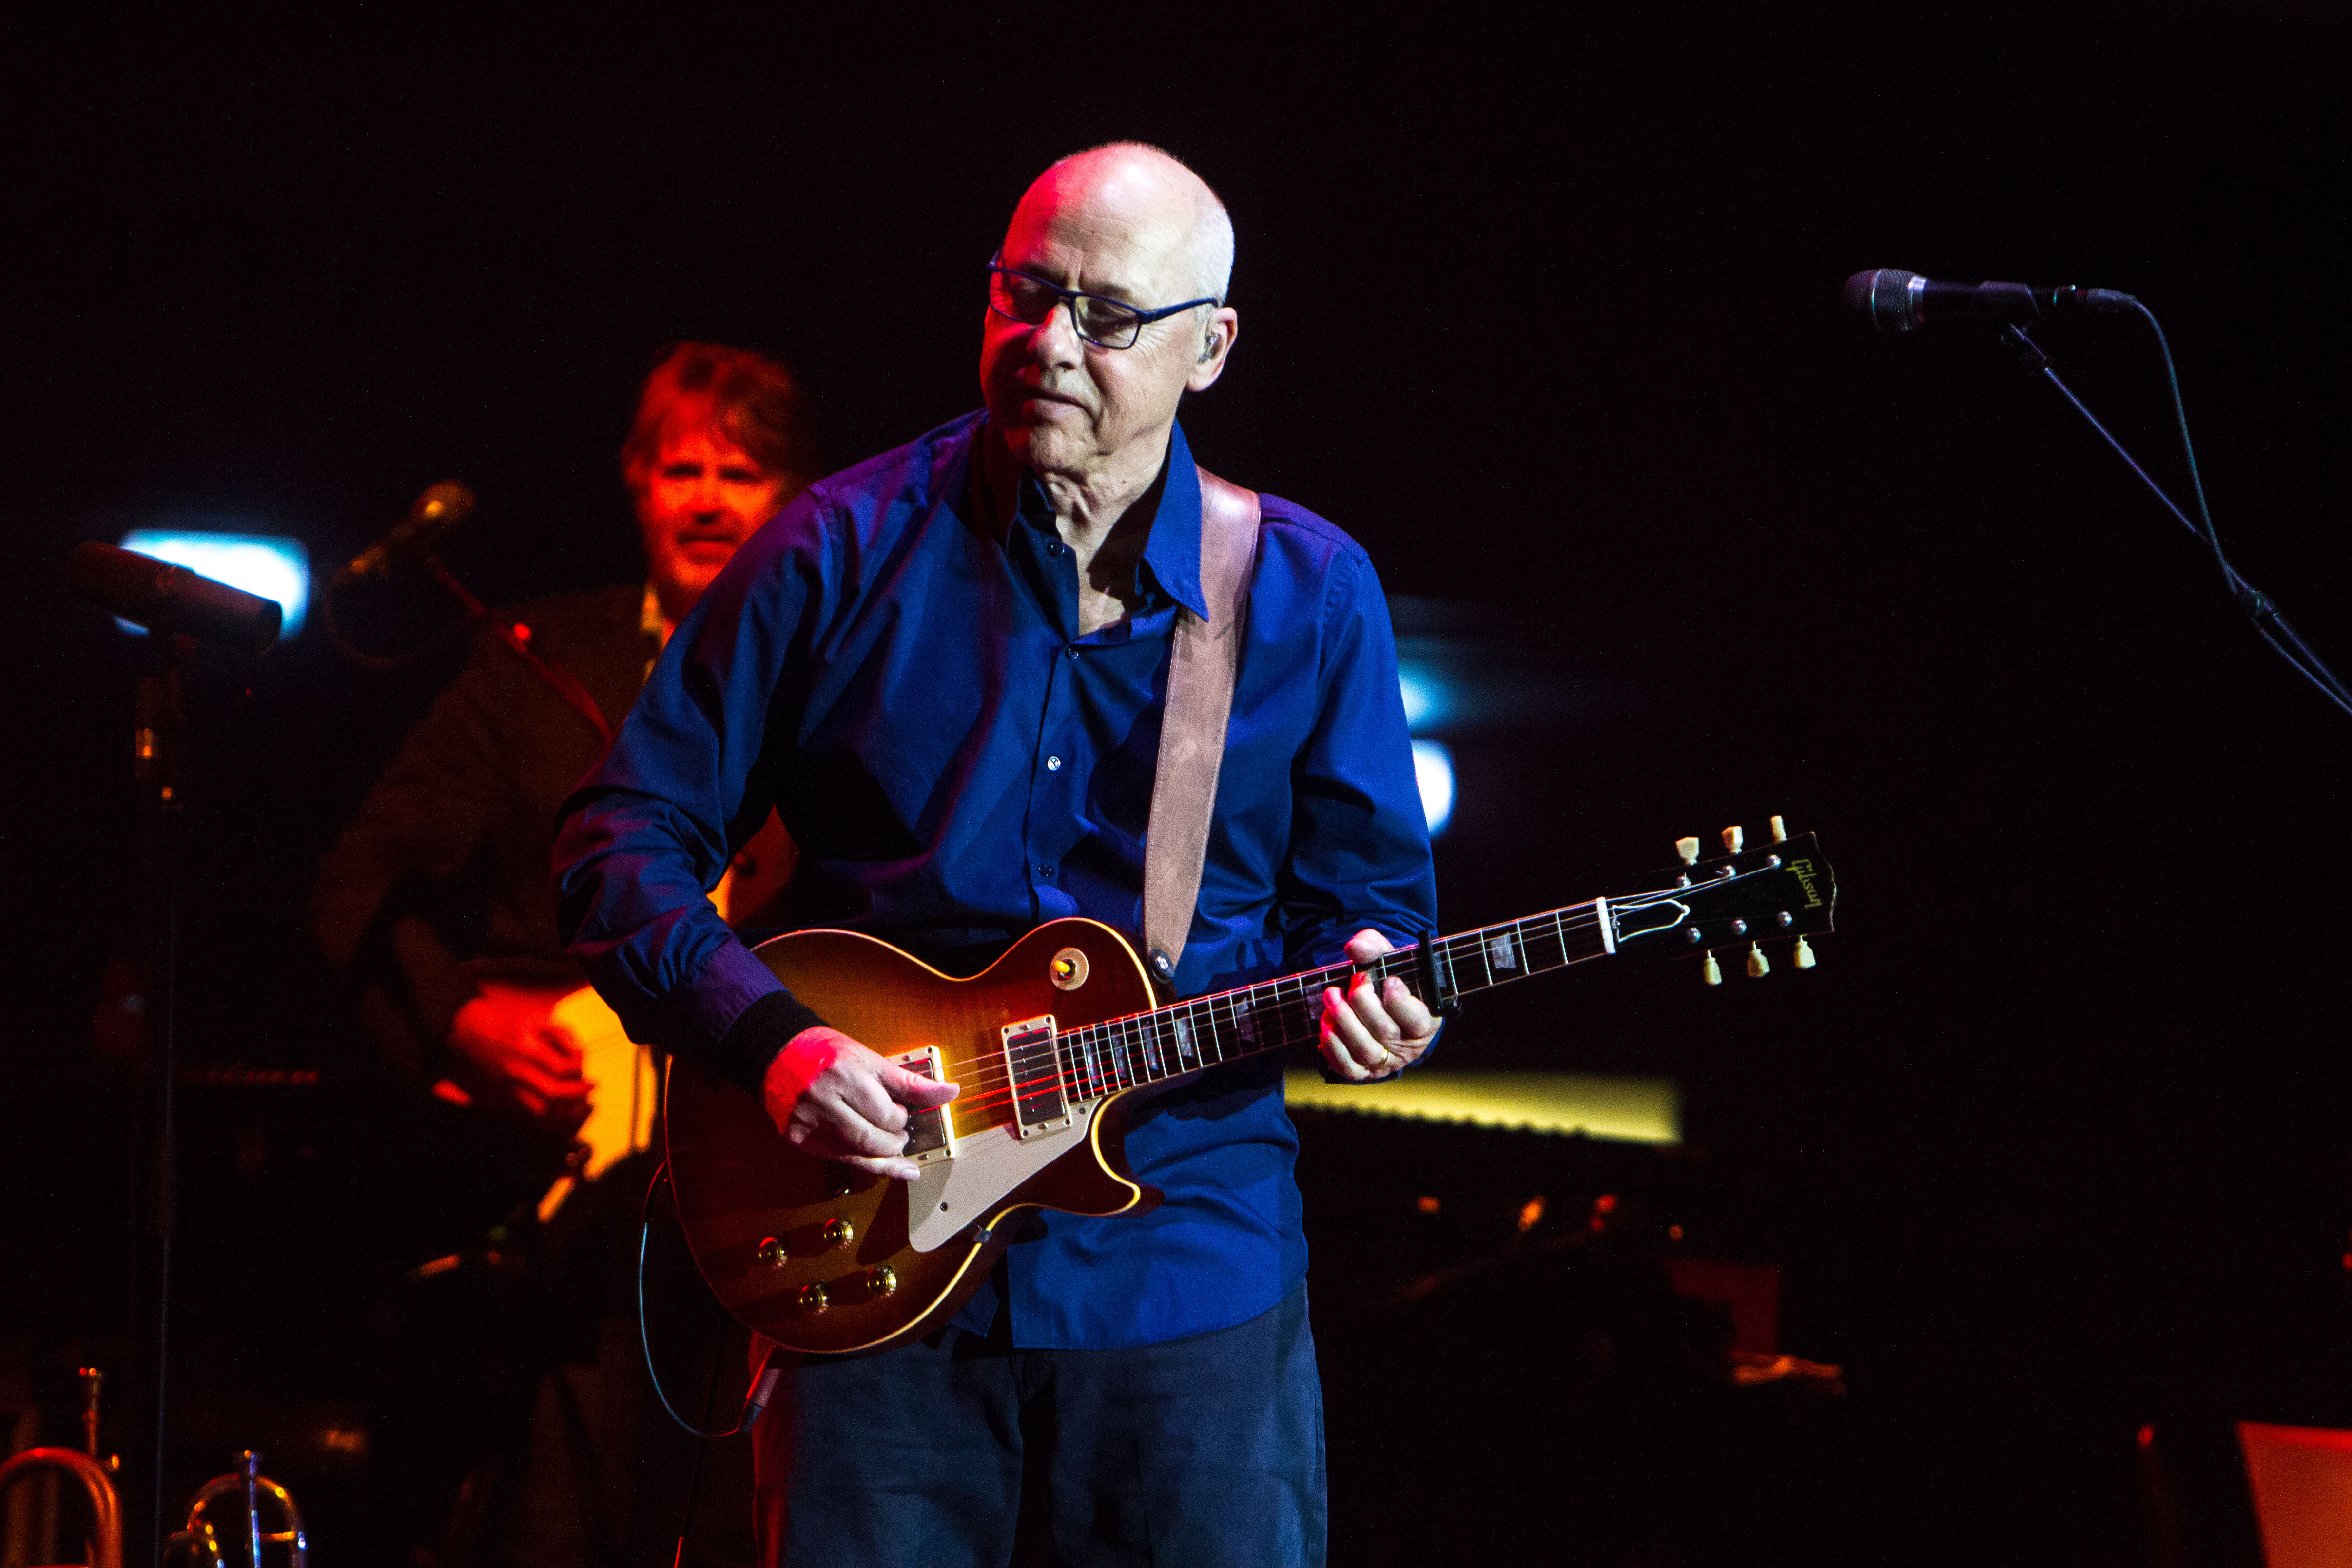 Mark Knopfler Using Kemper Profiling Amps for His Onstage Sound | Guitarworld